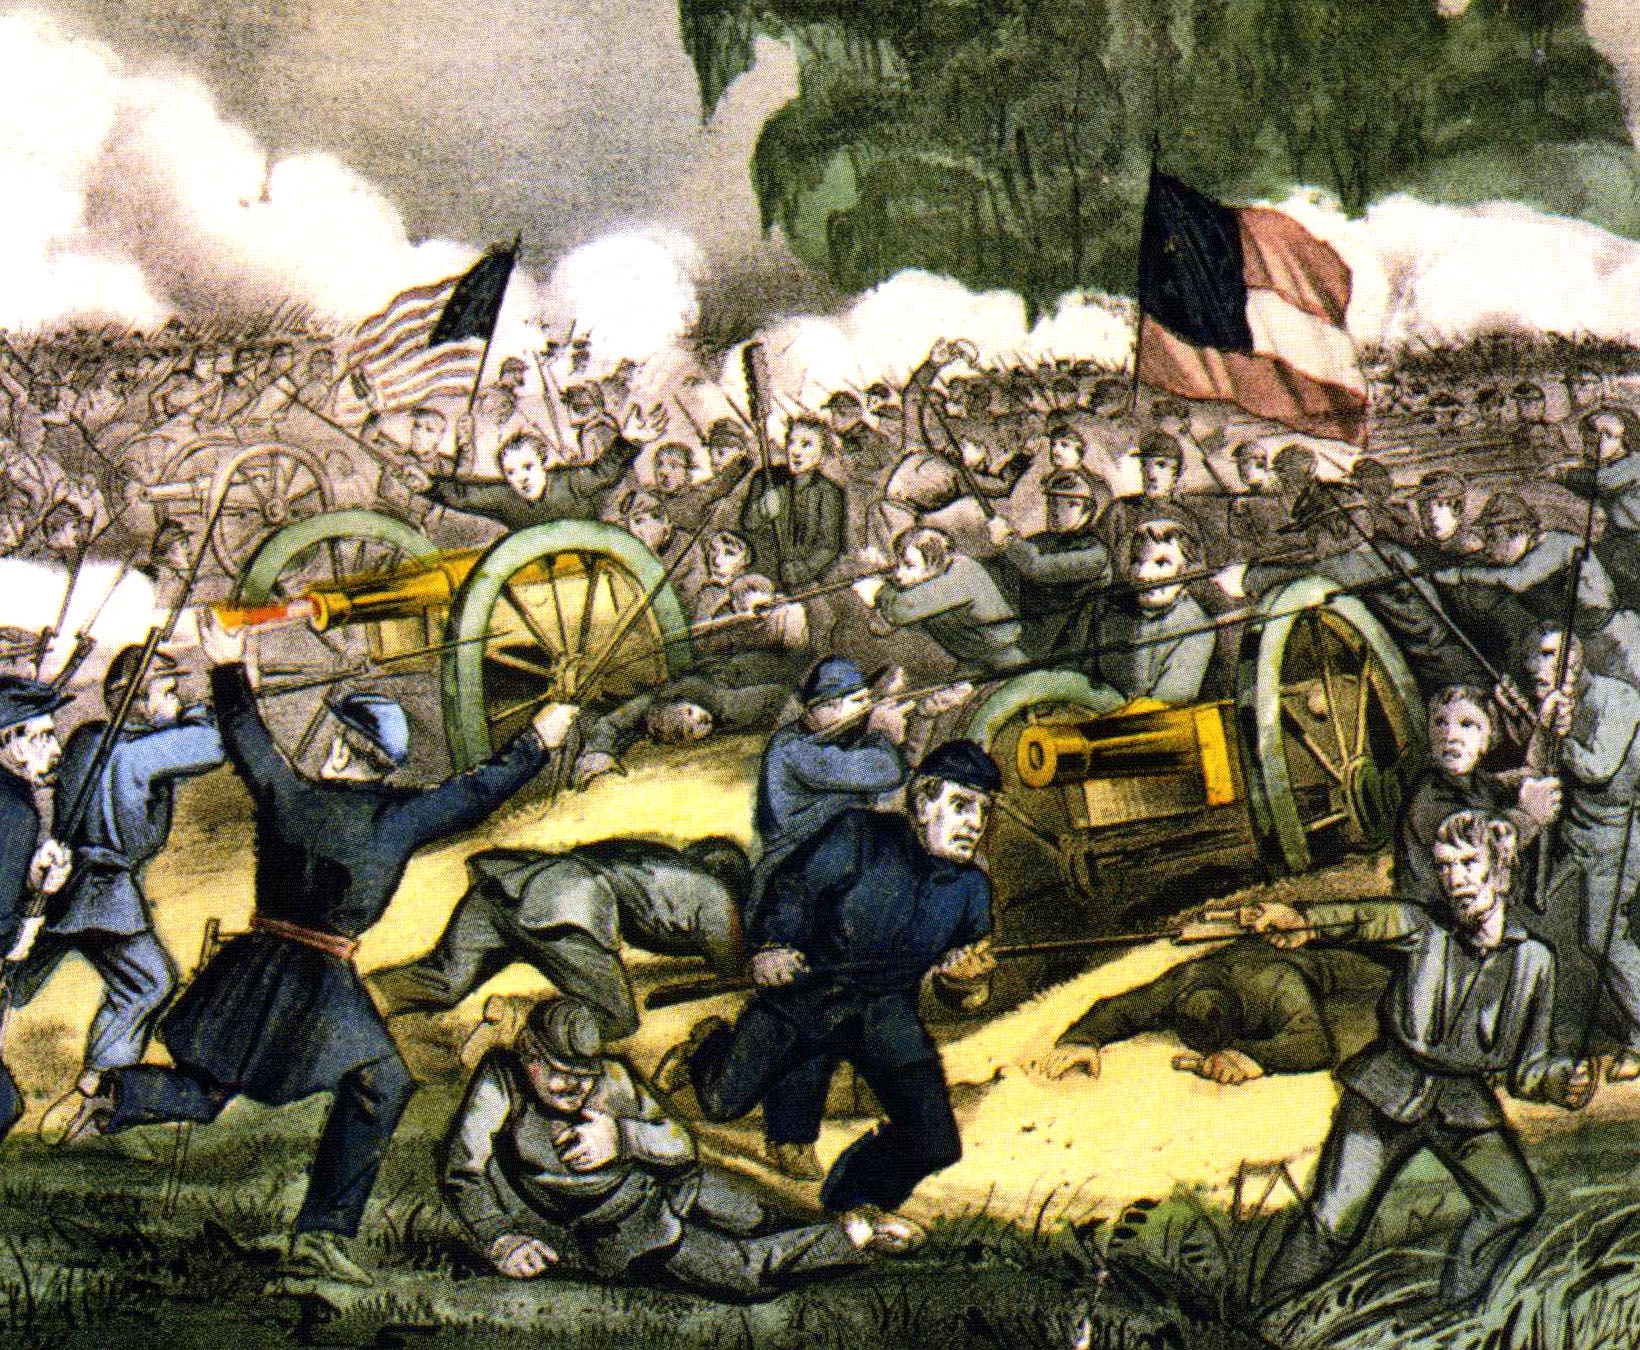 Lee believed that he would never raise his sword against the Union — only in defense of his state — but that changed as the war progressed; most notably when he led an invasion of Pennsylvania in 1863 and suffered a major defeat at Gettysburg (above).